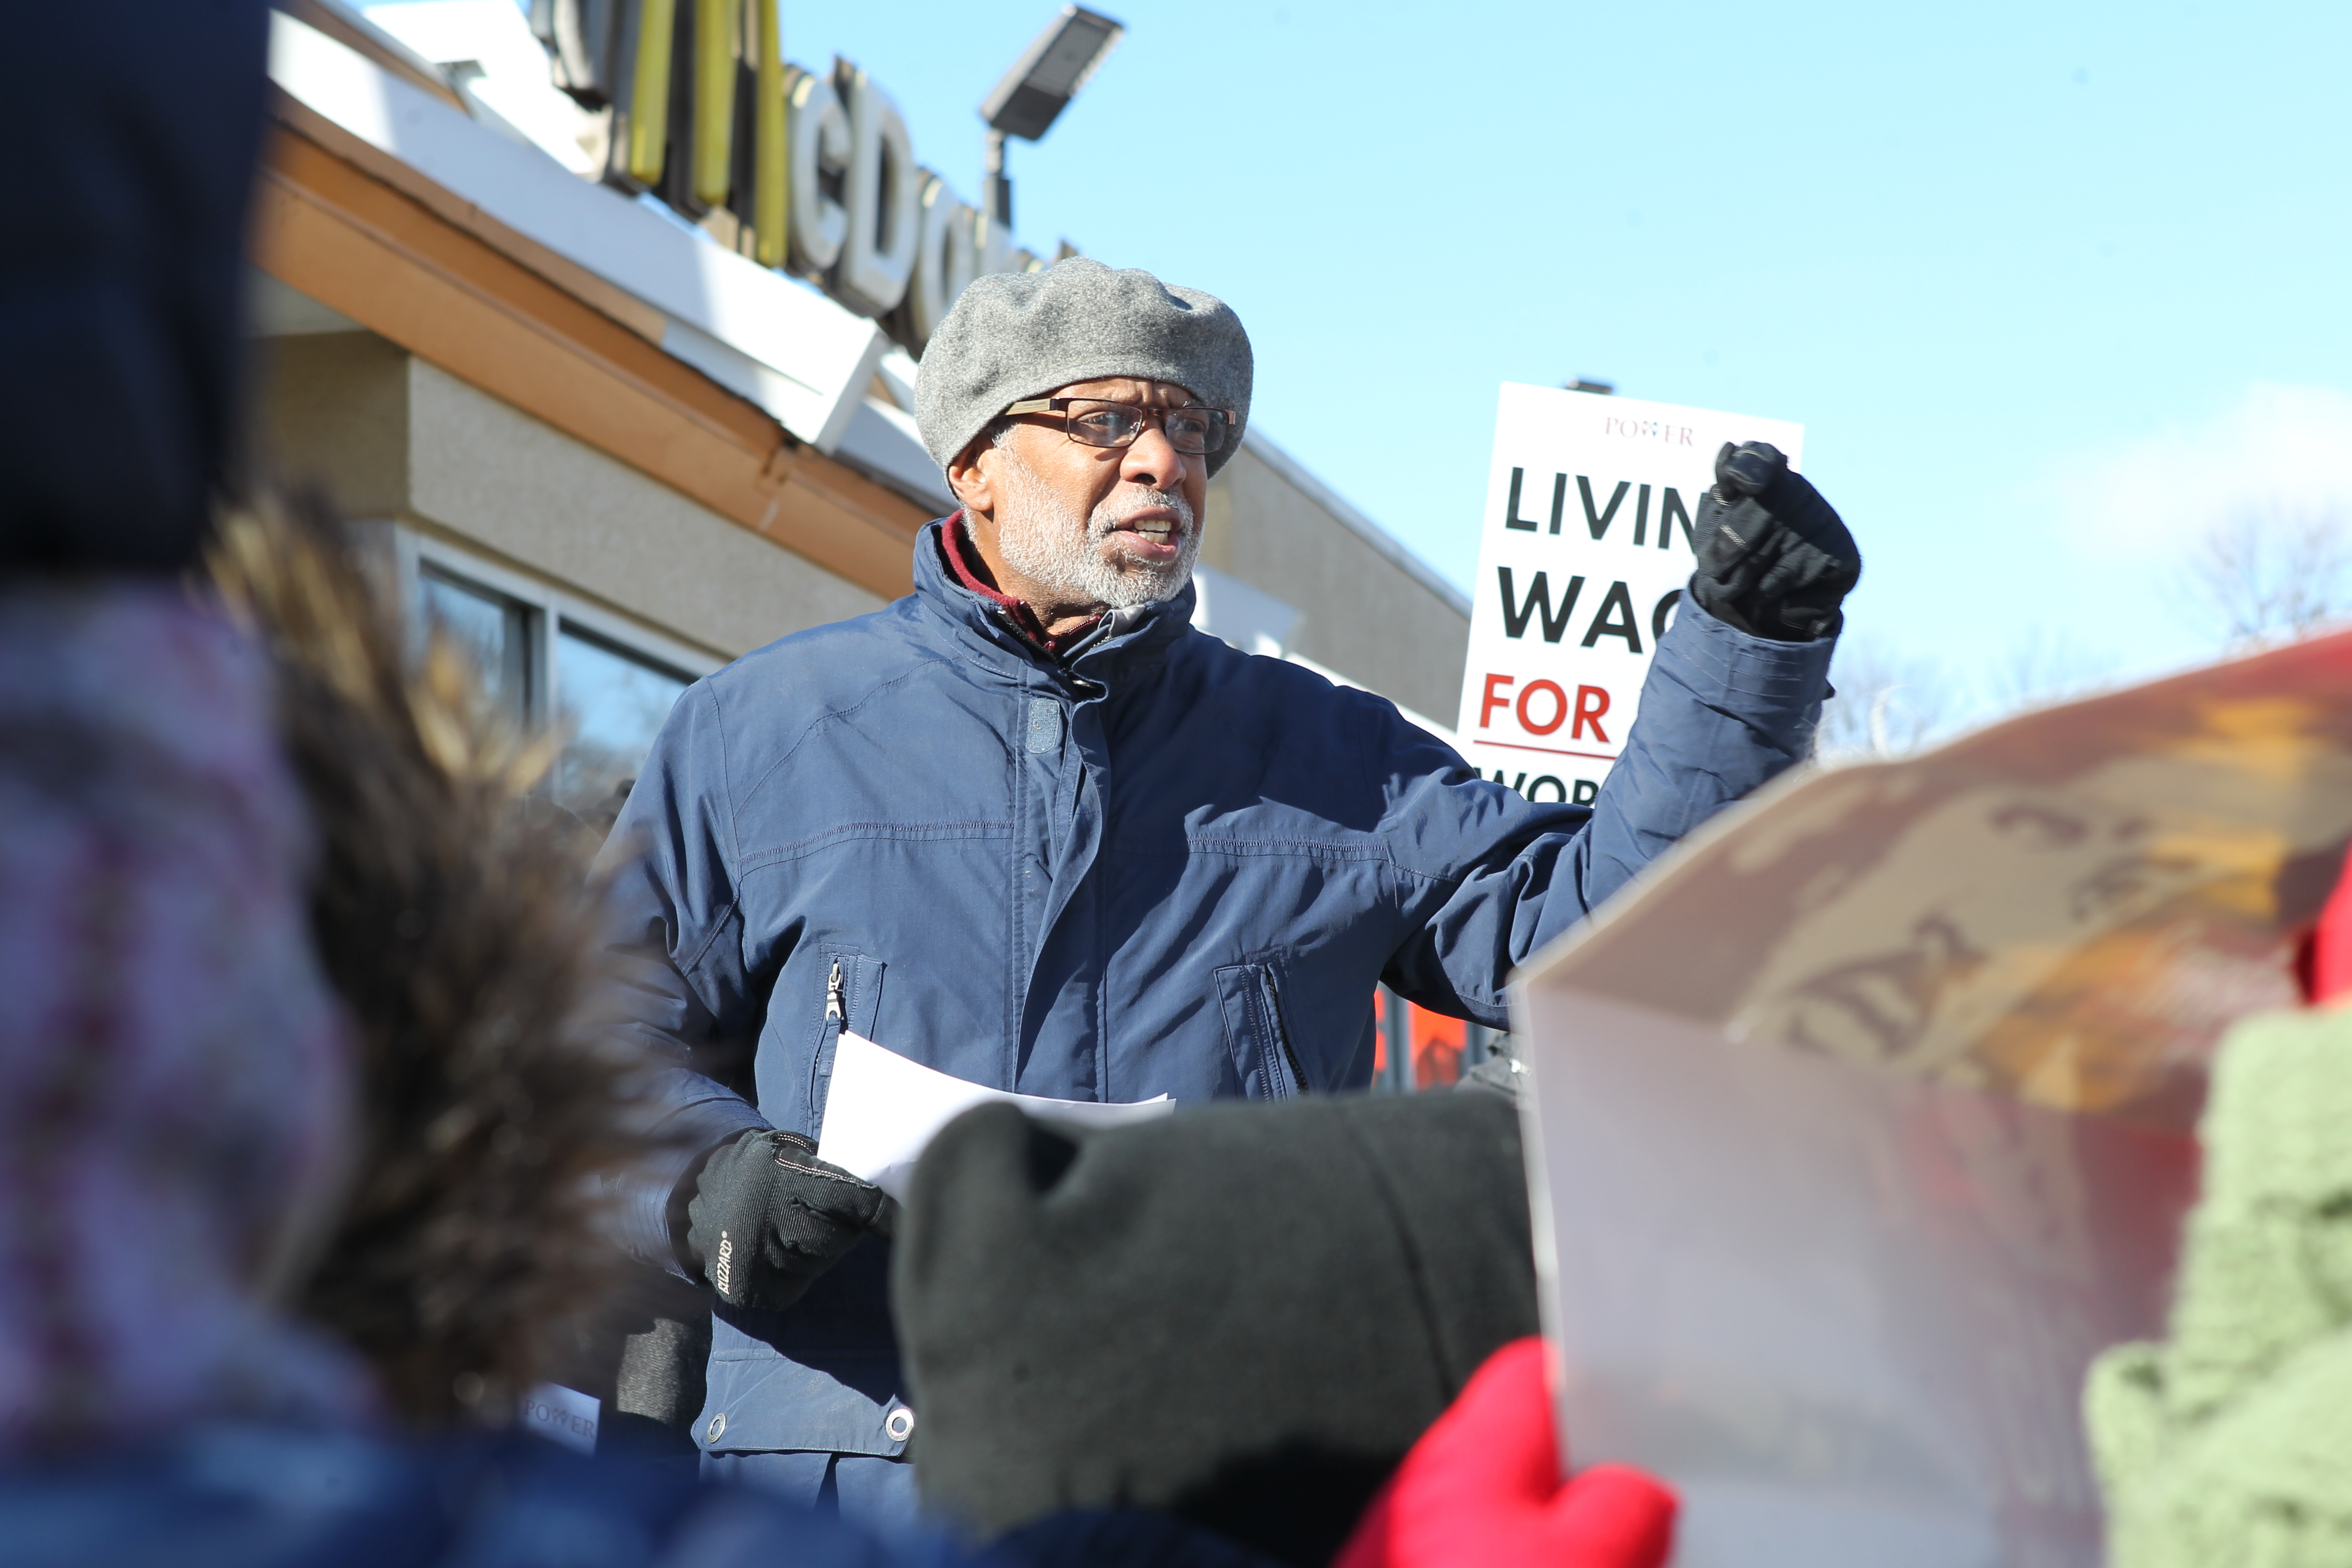 January 21, 2019 - Senator Haywood Hosts Raise the Wage Rally on MLK Day of Action